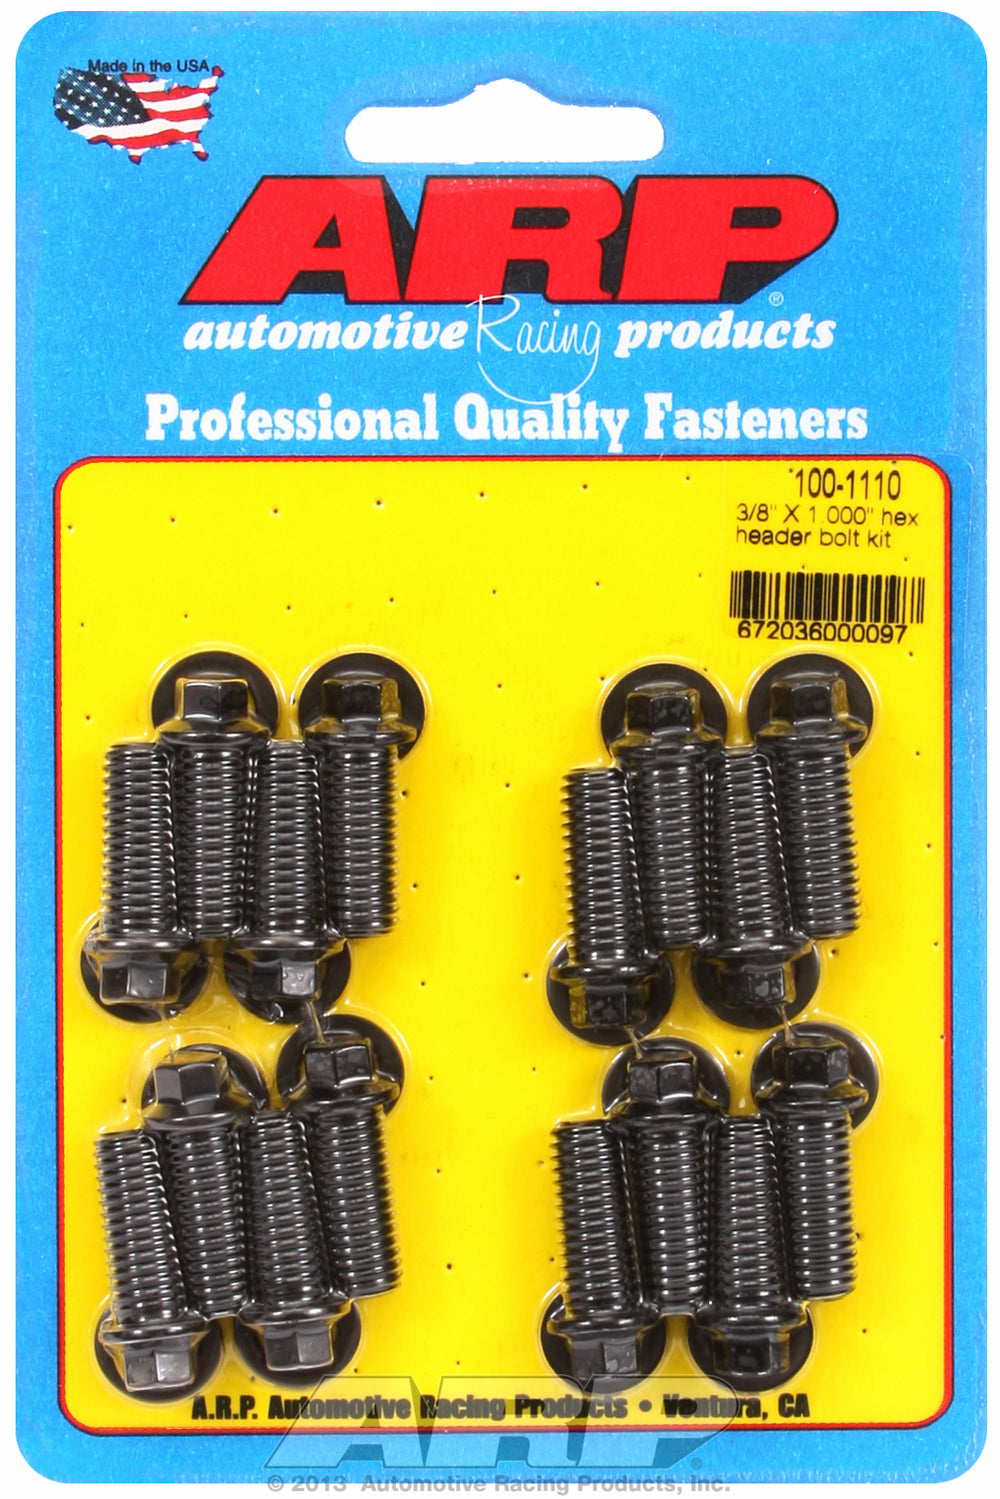 Universal Header Bolt Kit 5/16in wrench, 3/8in, 1.000in UHL Black Oxide Hex Head